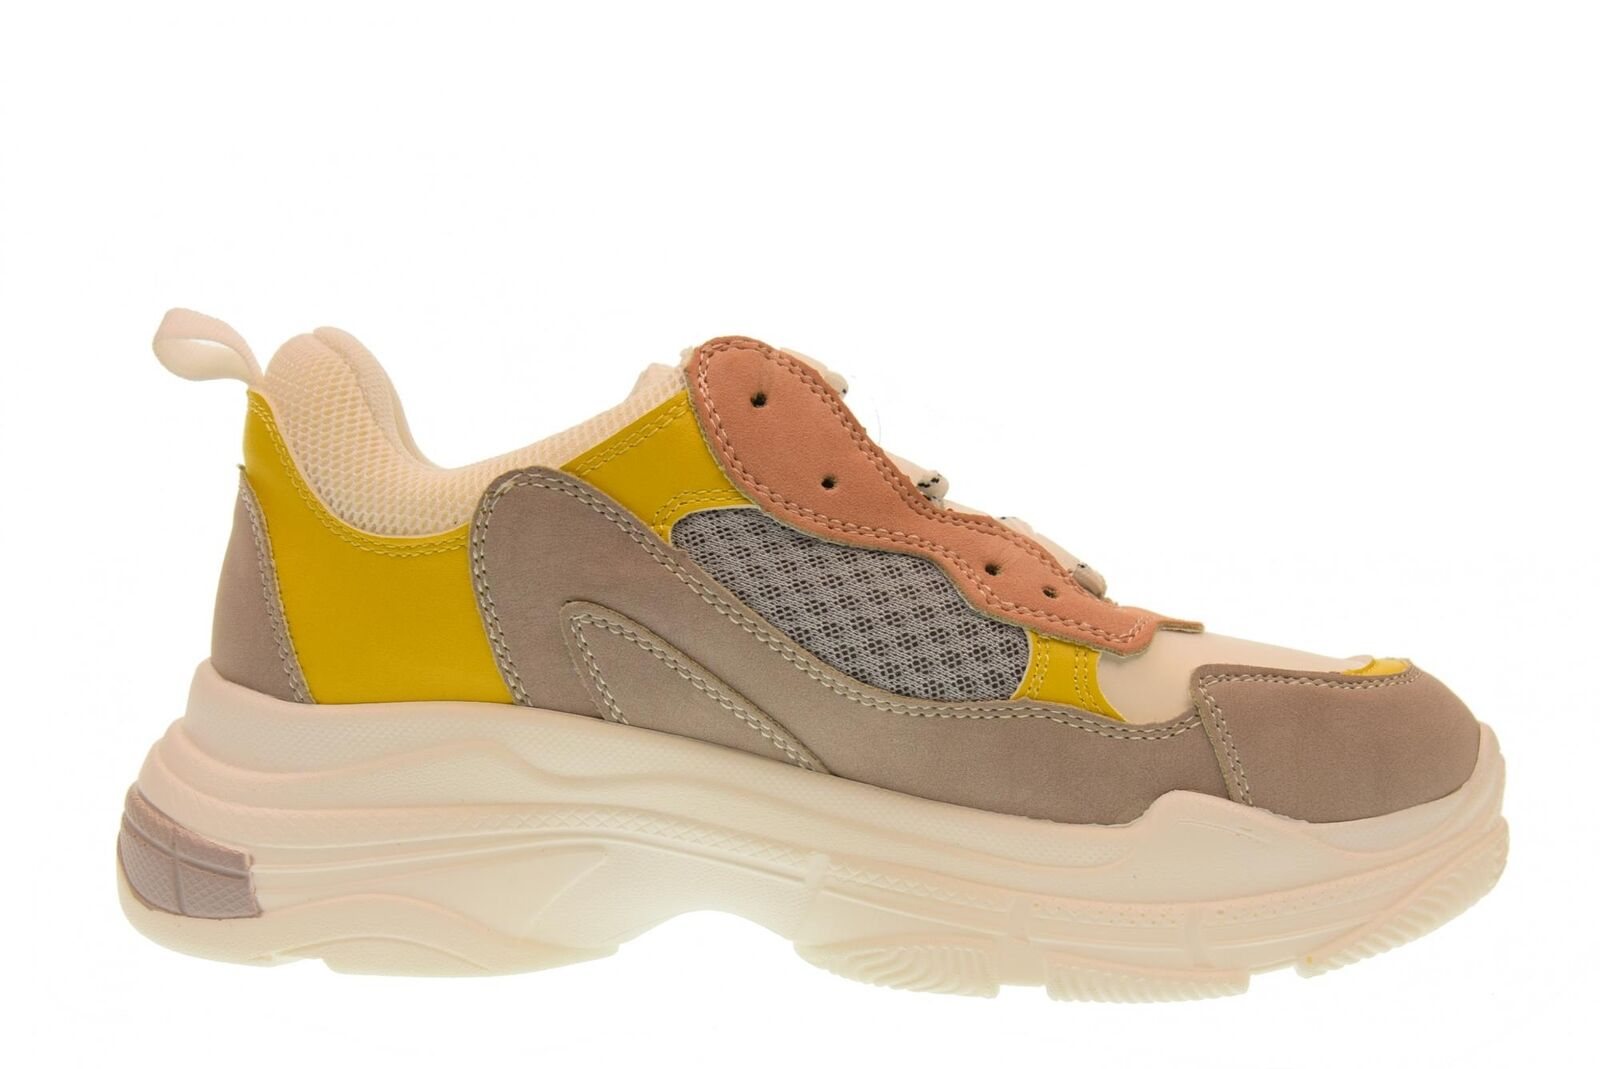 Gold&Gold A18u gt529 schuhe woman low Turnschuhe gt529 A18u YELLOW-GRAY 8e48b3